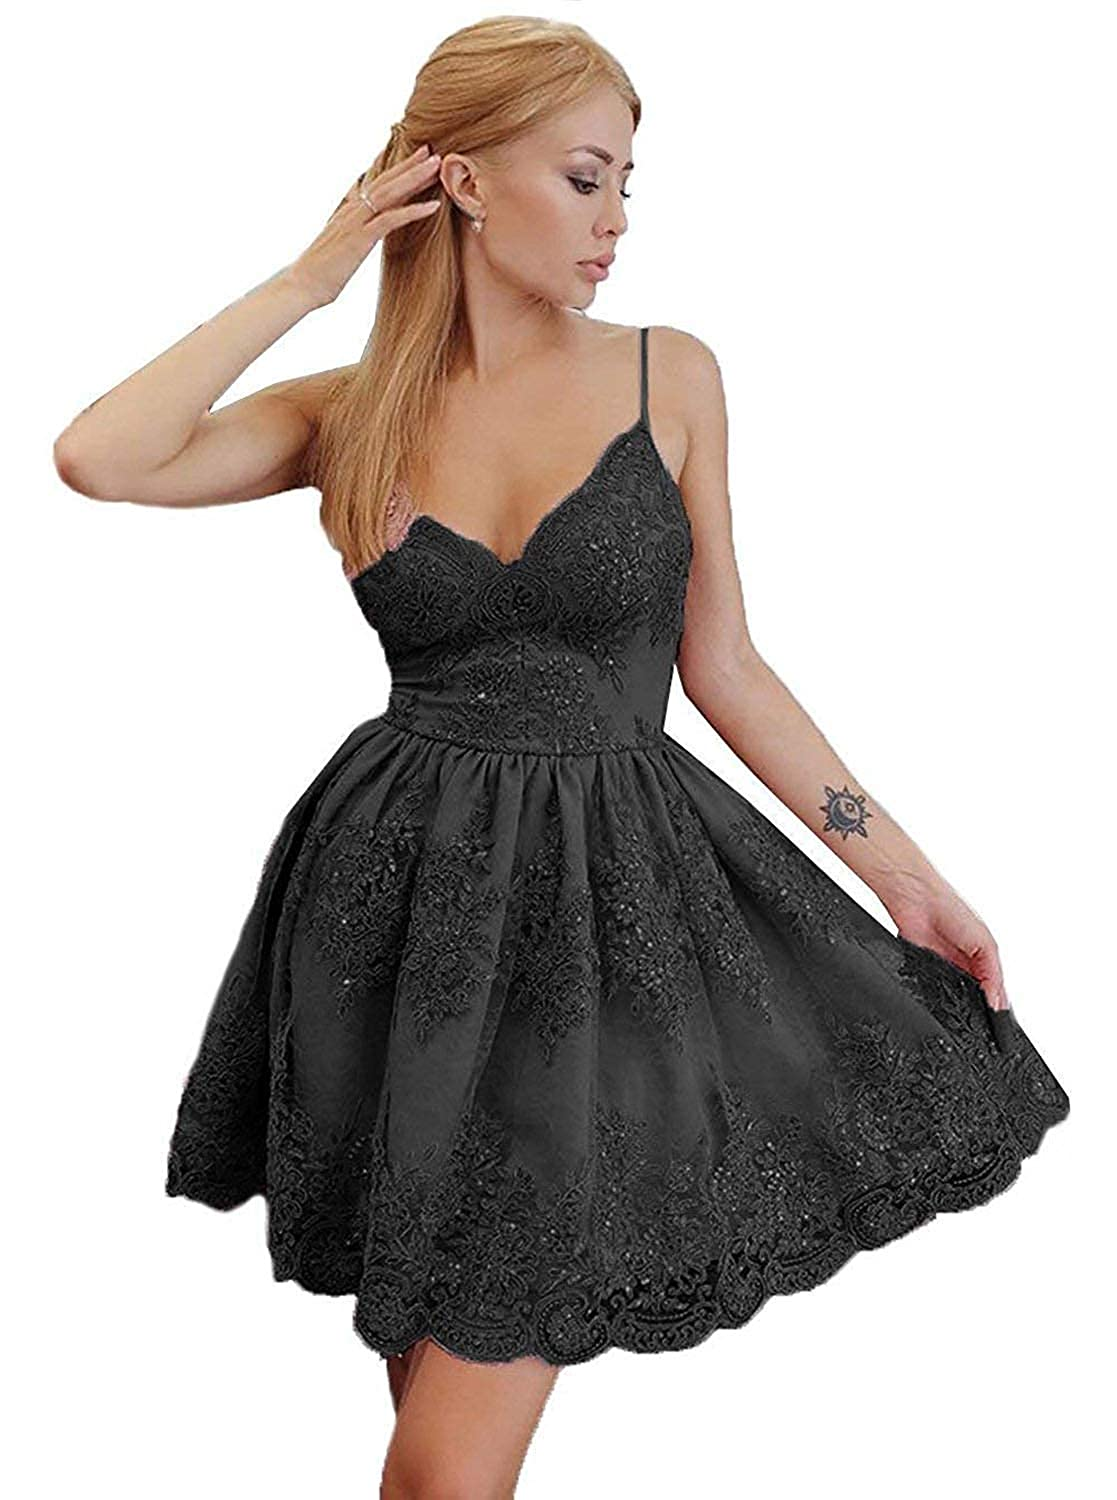 Black Sulidi Womens Spaghetti Straps Lace Homecoming Dresses Short 2019 V Neck Party Gowns C132